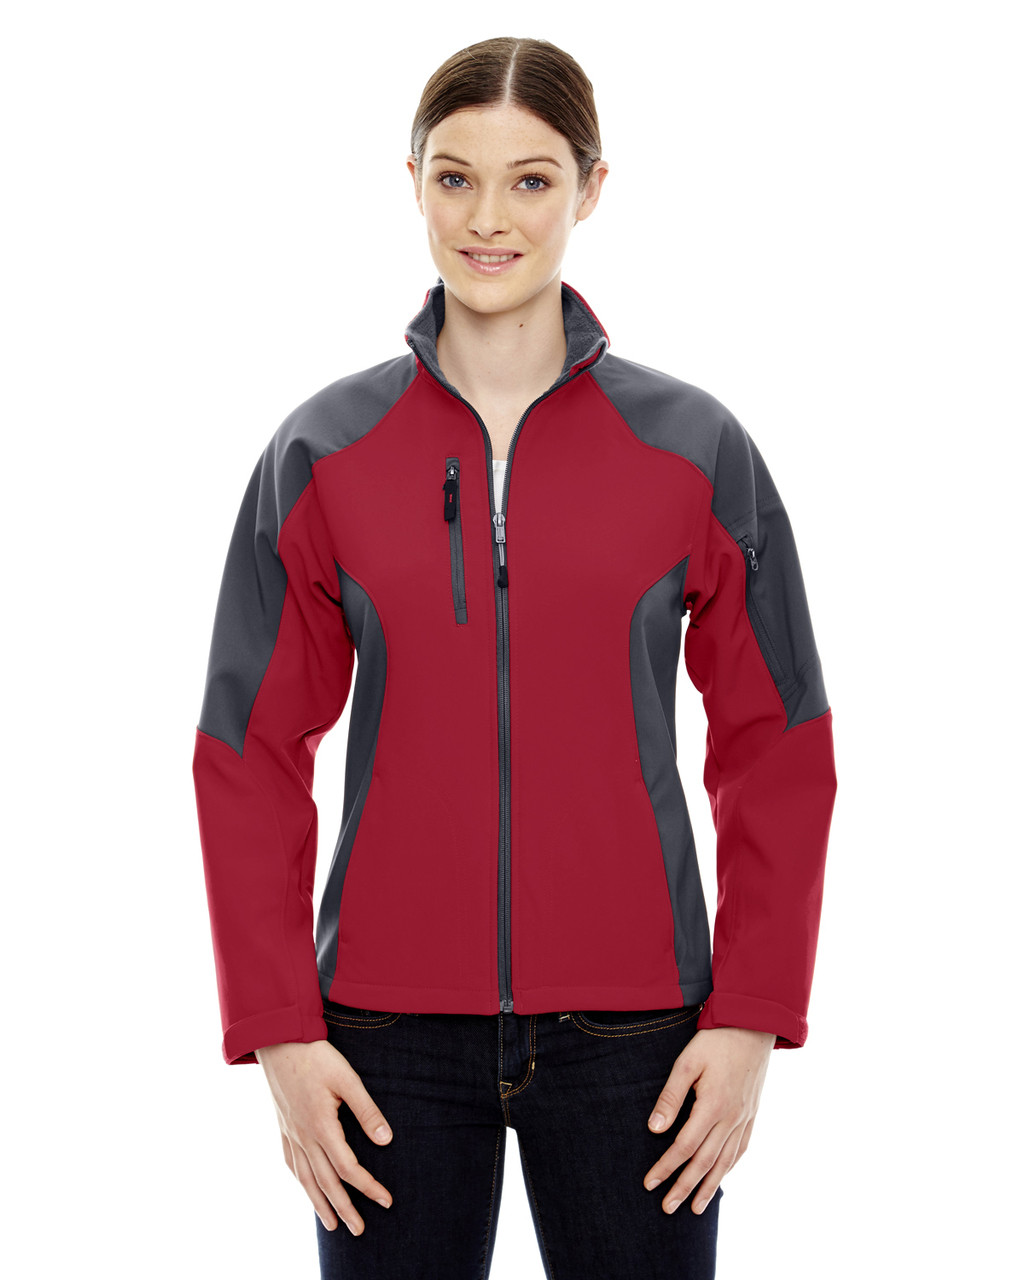 Molten Red - 78077 North End Ladies' Colour-Block Soft Shell Jacket   Blankclothing.ca